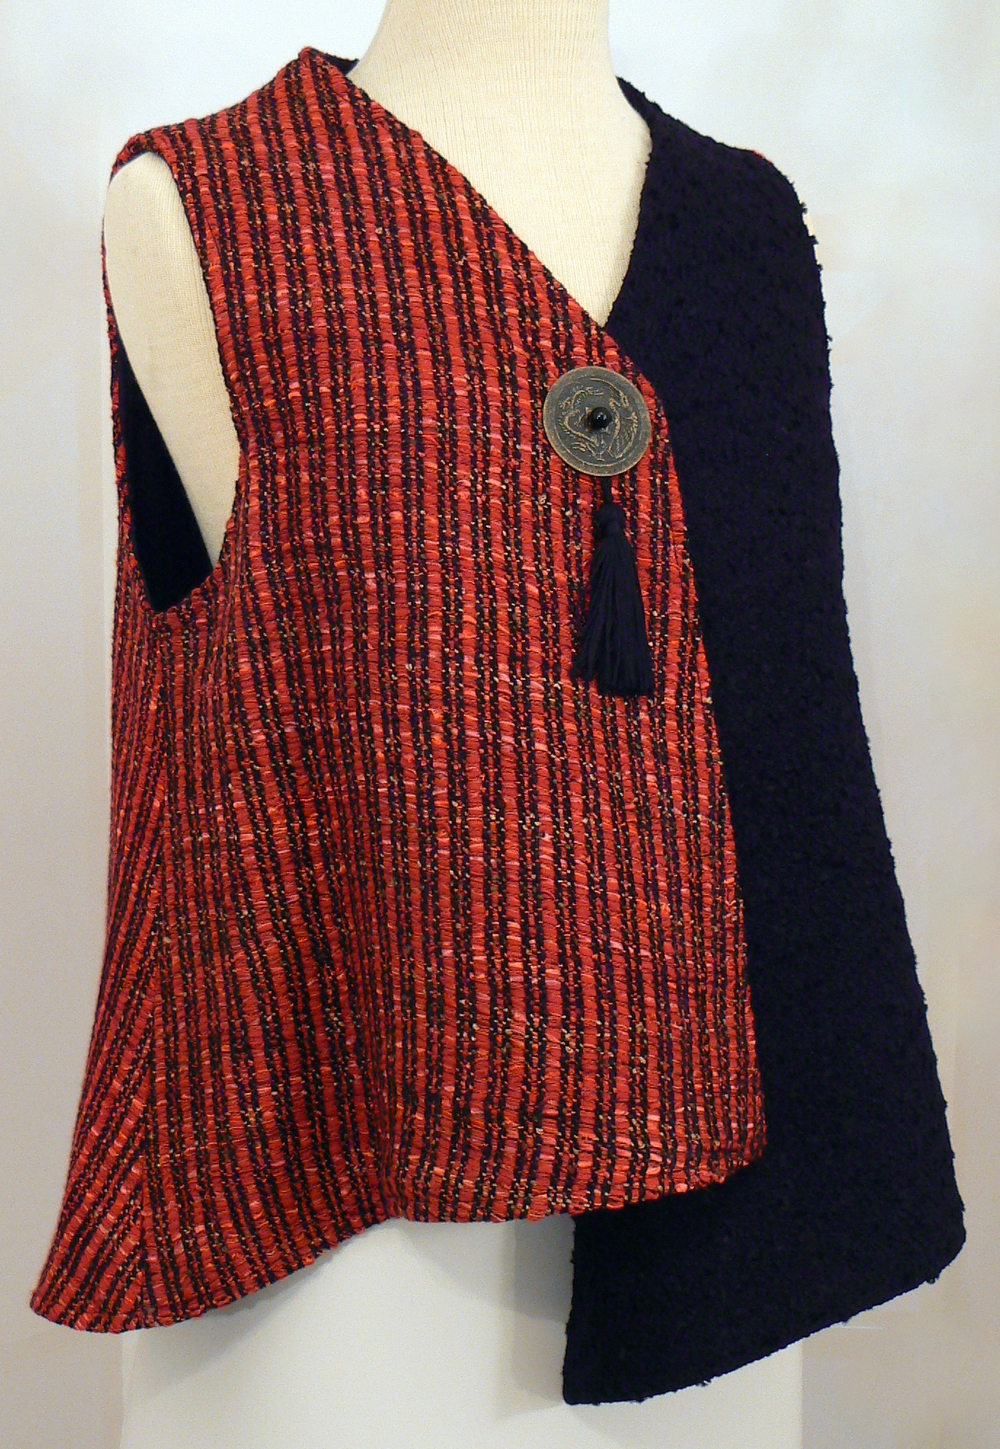 Handwoven Clothing, Vest, Kathleen Weir-West, 36-001.JPG